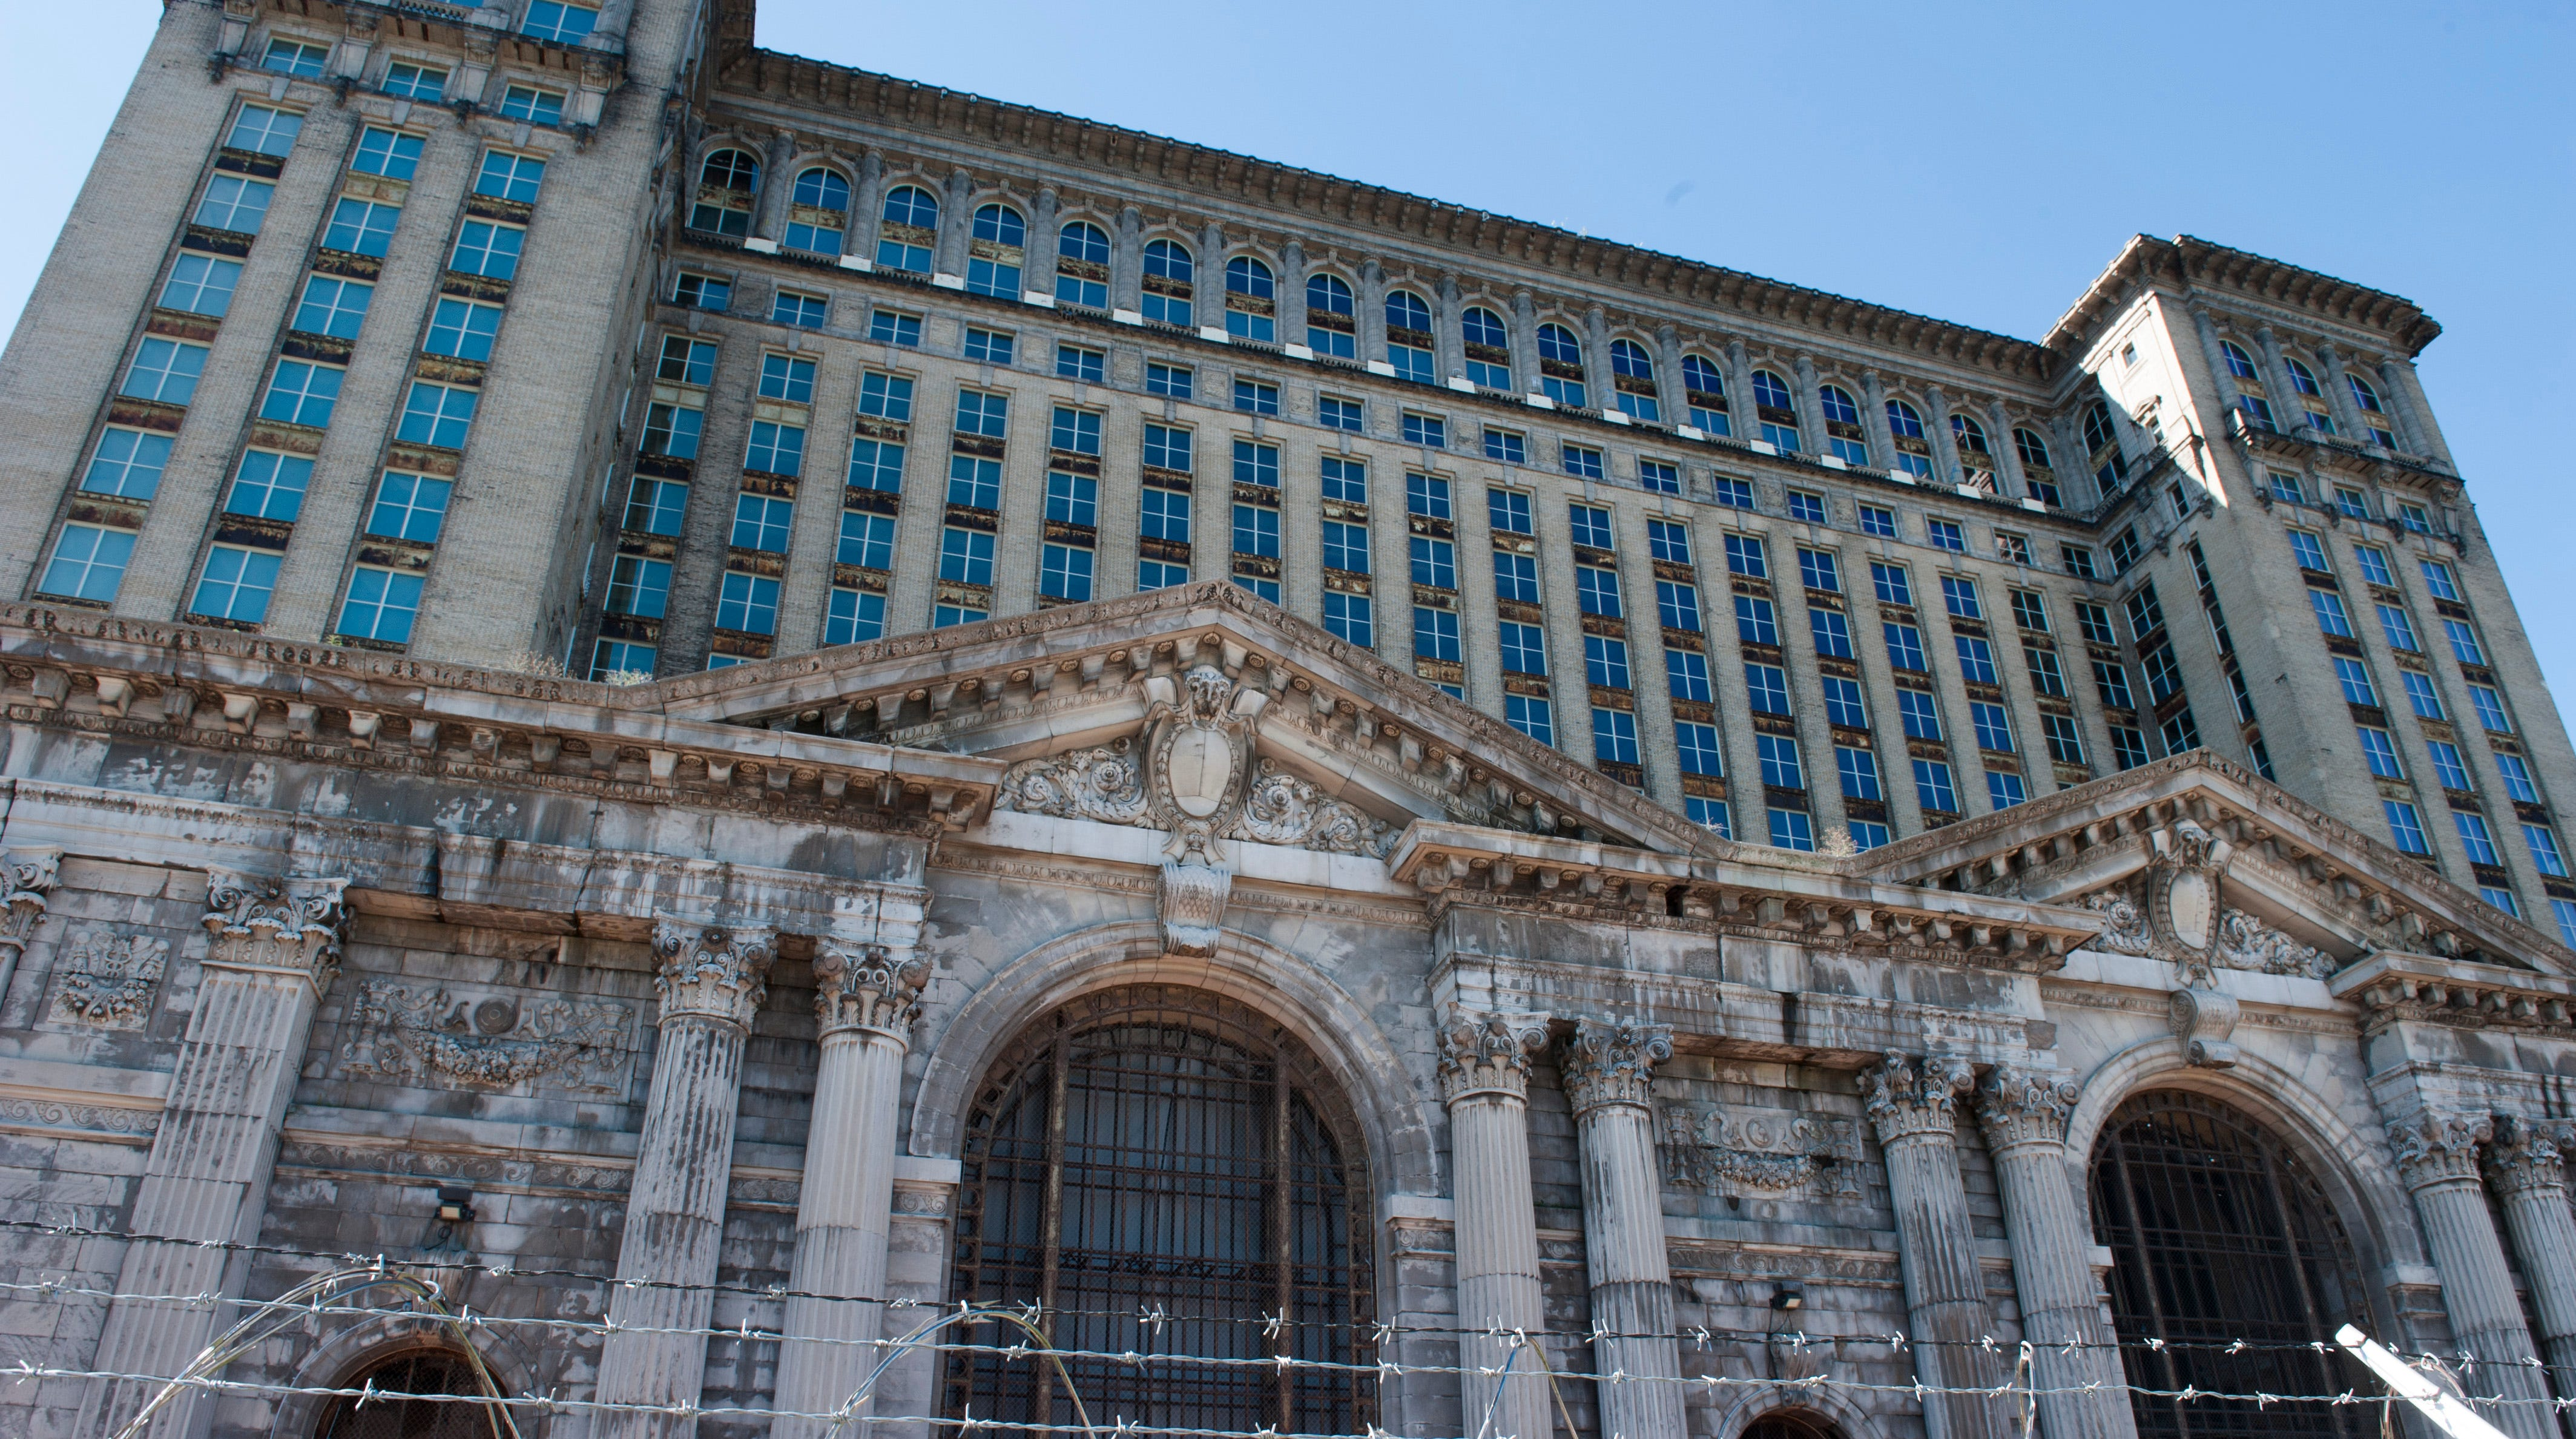 Exterior of the Michigan Central Station in Detroit. While Ford Motor Company prepares to move some of its operations to the Michigan Central Station in Detroit's Corktown neighborhood, the Ford Fund commisioned Rebel Nell, a social entrepreneur, to repurpose layers of graffiti paint from the wallls inside the massive structure and turn them into one-of-a-kind pieces of jewelry. Photos taken on Tuesday, September 11, 2018.